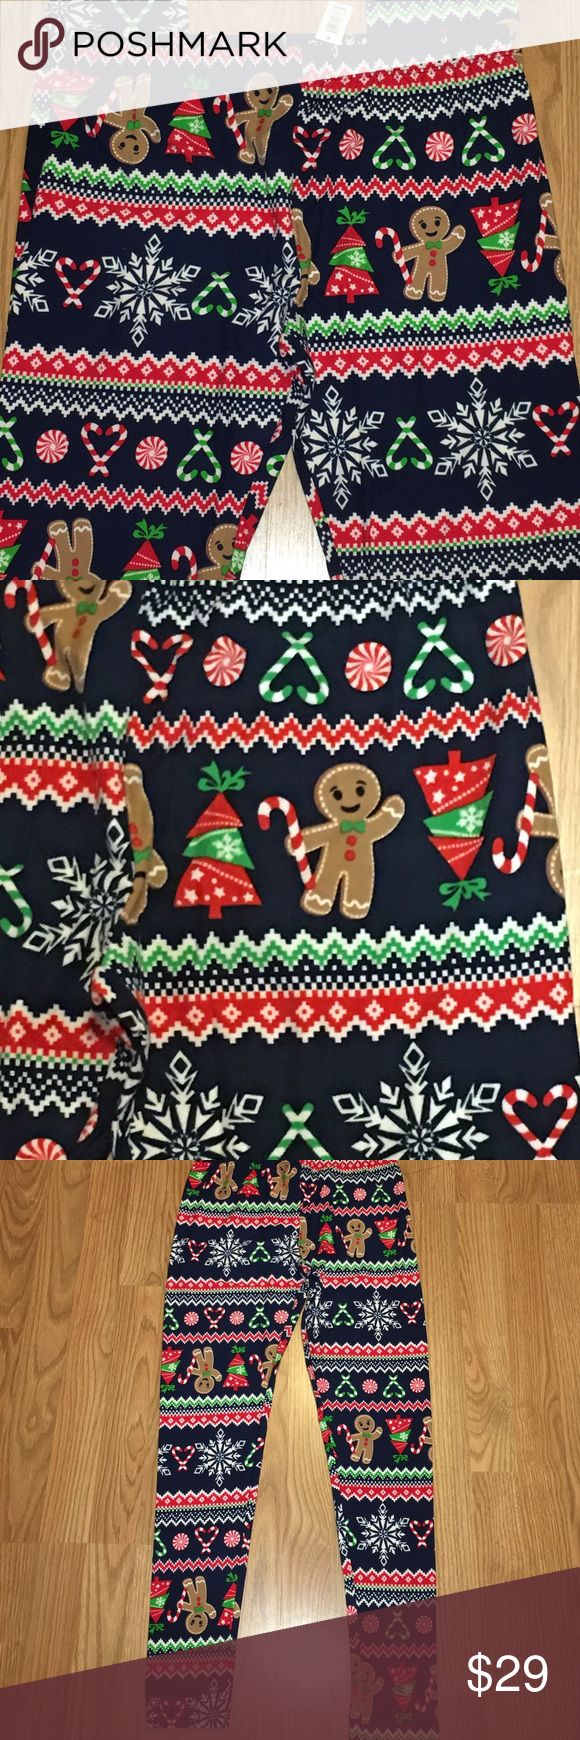 Buttery Soft Christmas Gingerbread Men Leggings New with tags!!!  Christmas leggings in a buttery soft sueded fabric like Lularoe. These feature Gingerbread men, candies, and Christmas trees on a navy blue background. 90% polyester and 10% spandex. Size large (11-13). Pants Leggings